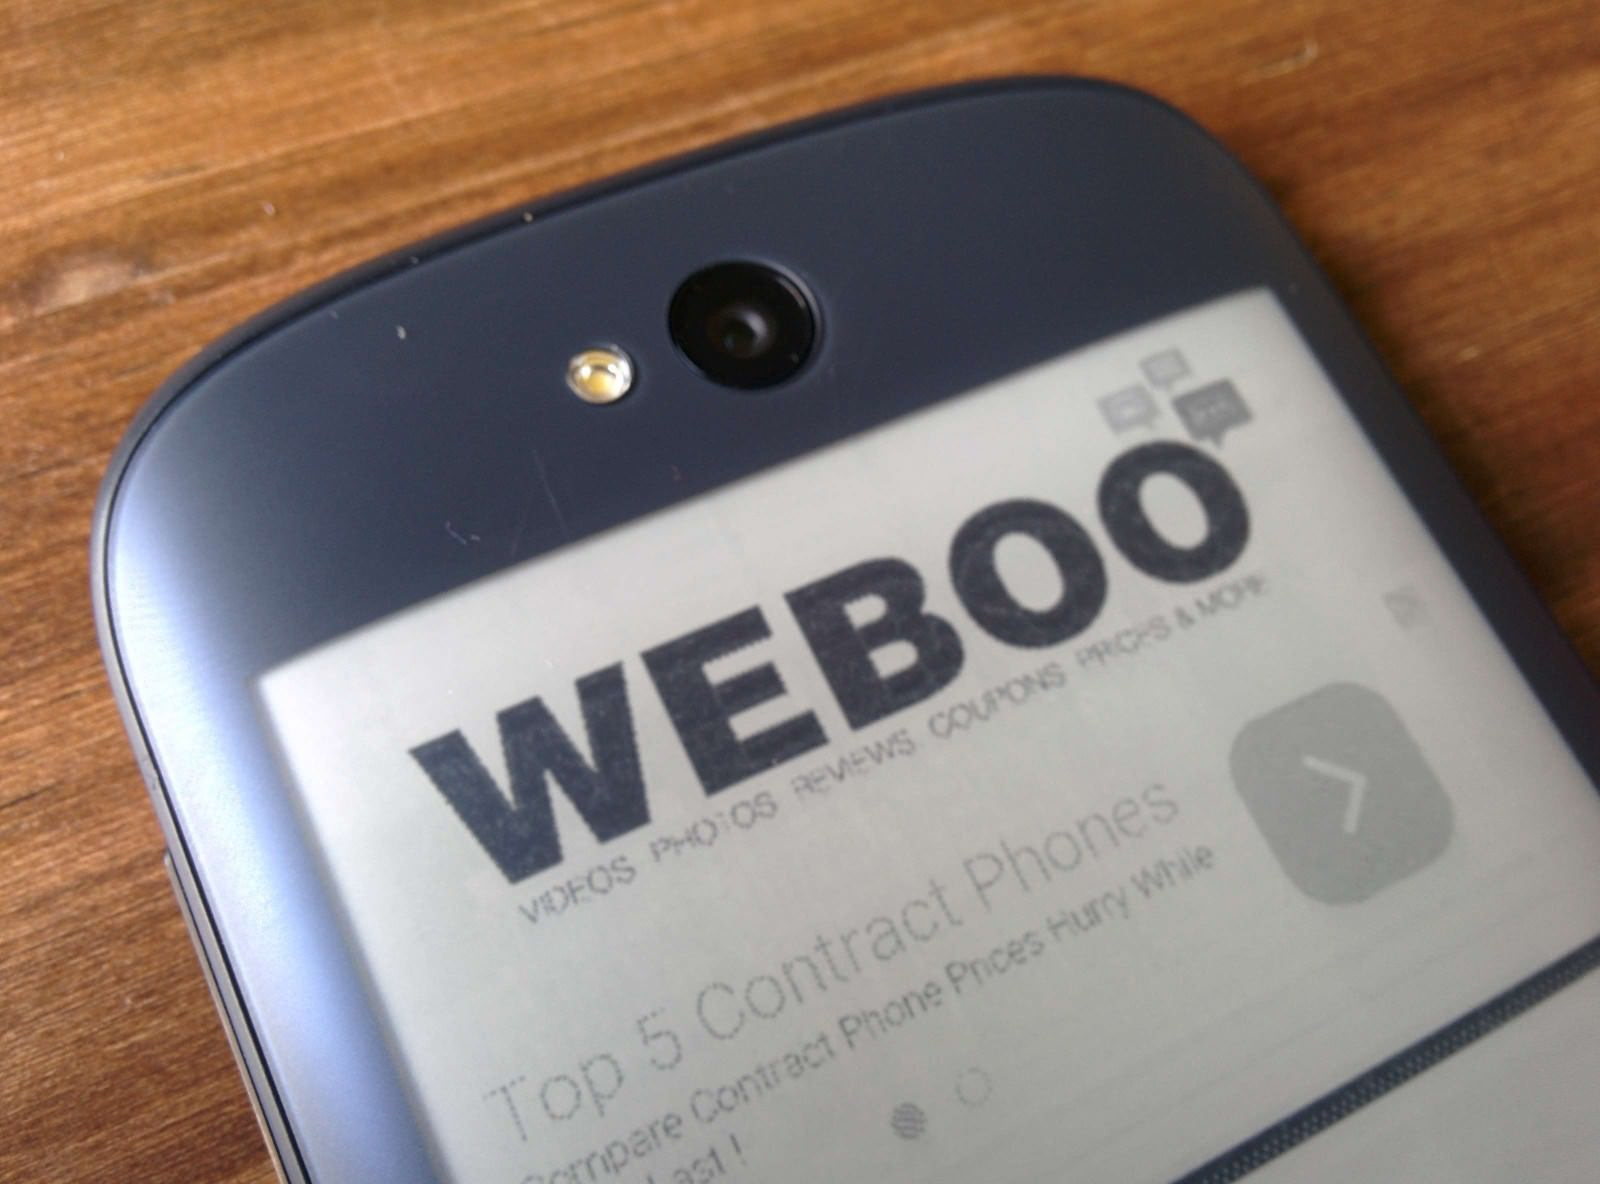 yotaphone-2-review-weboo-co3